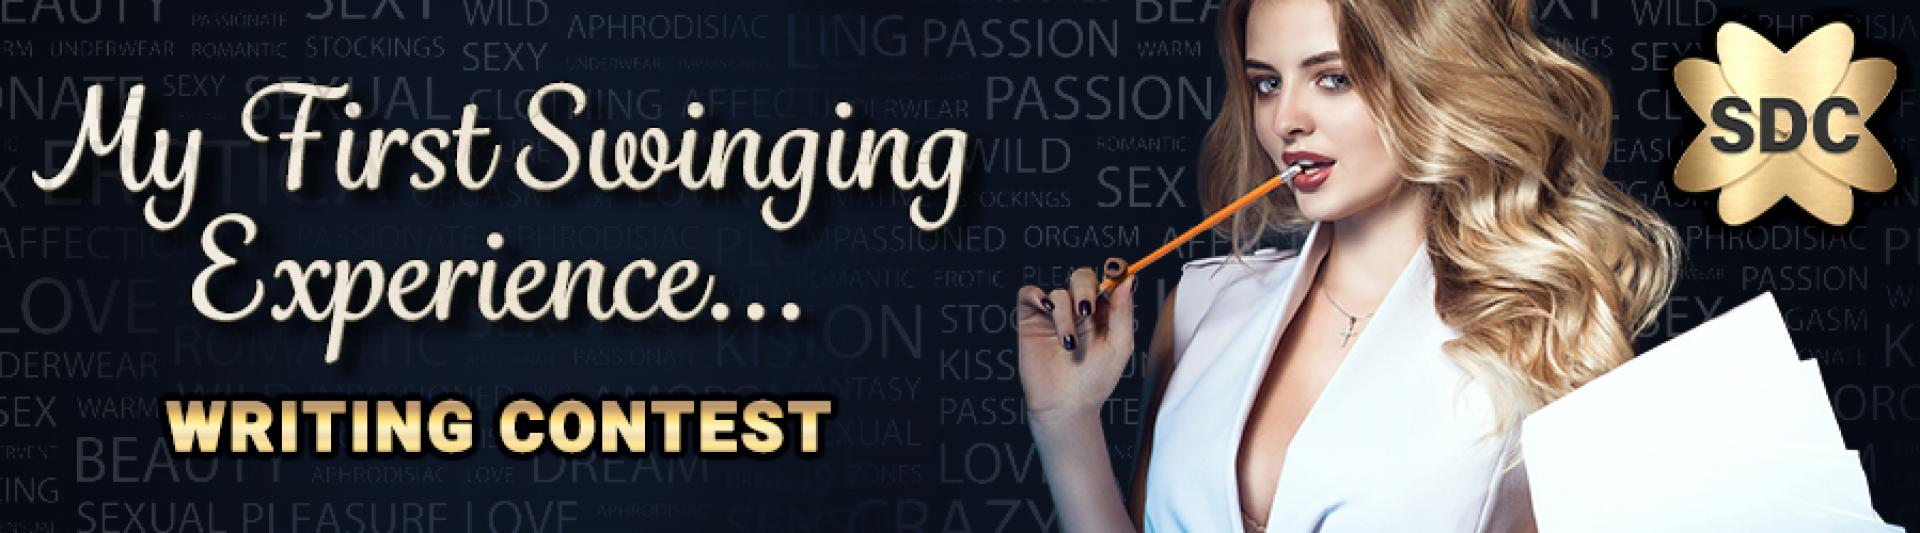 SDC Erotic Writing Contest First Swinging Experience Ledenverhaal